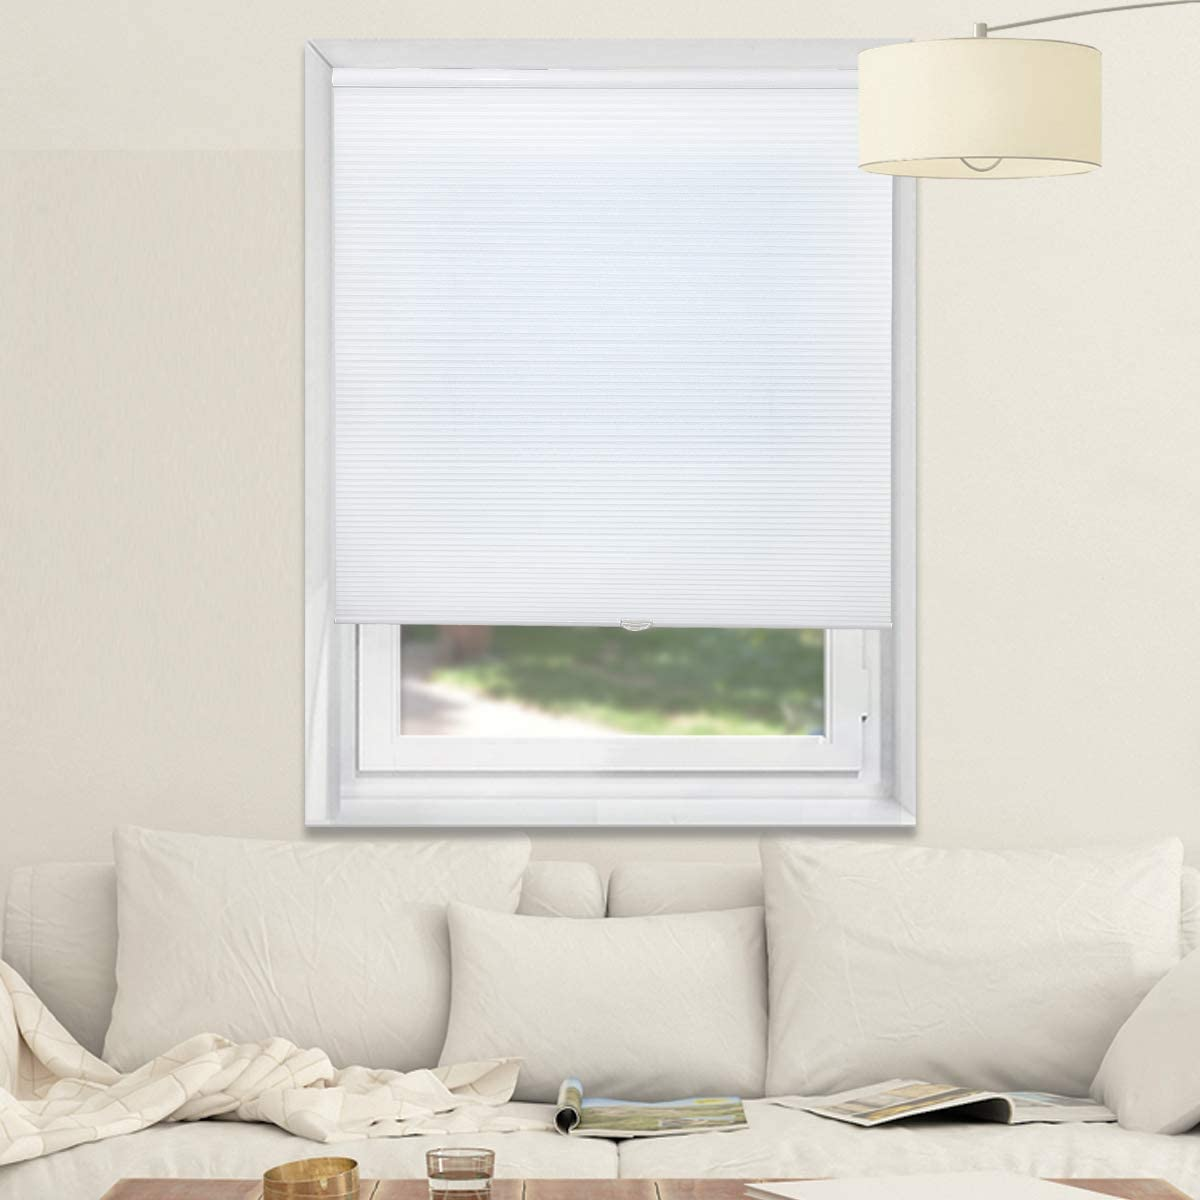 Corlless Blinds Cellular Shades Honeycomb Shades Light Filtering Fabric Blinds for Home and Office, White, 34x64